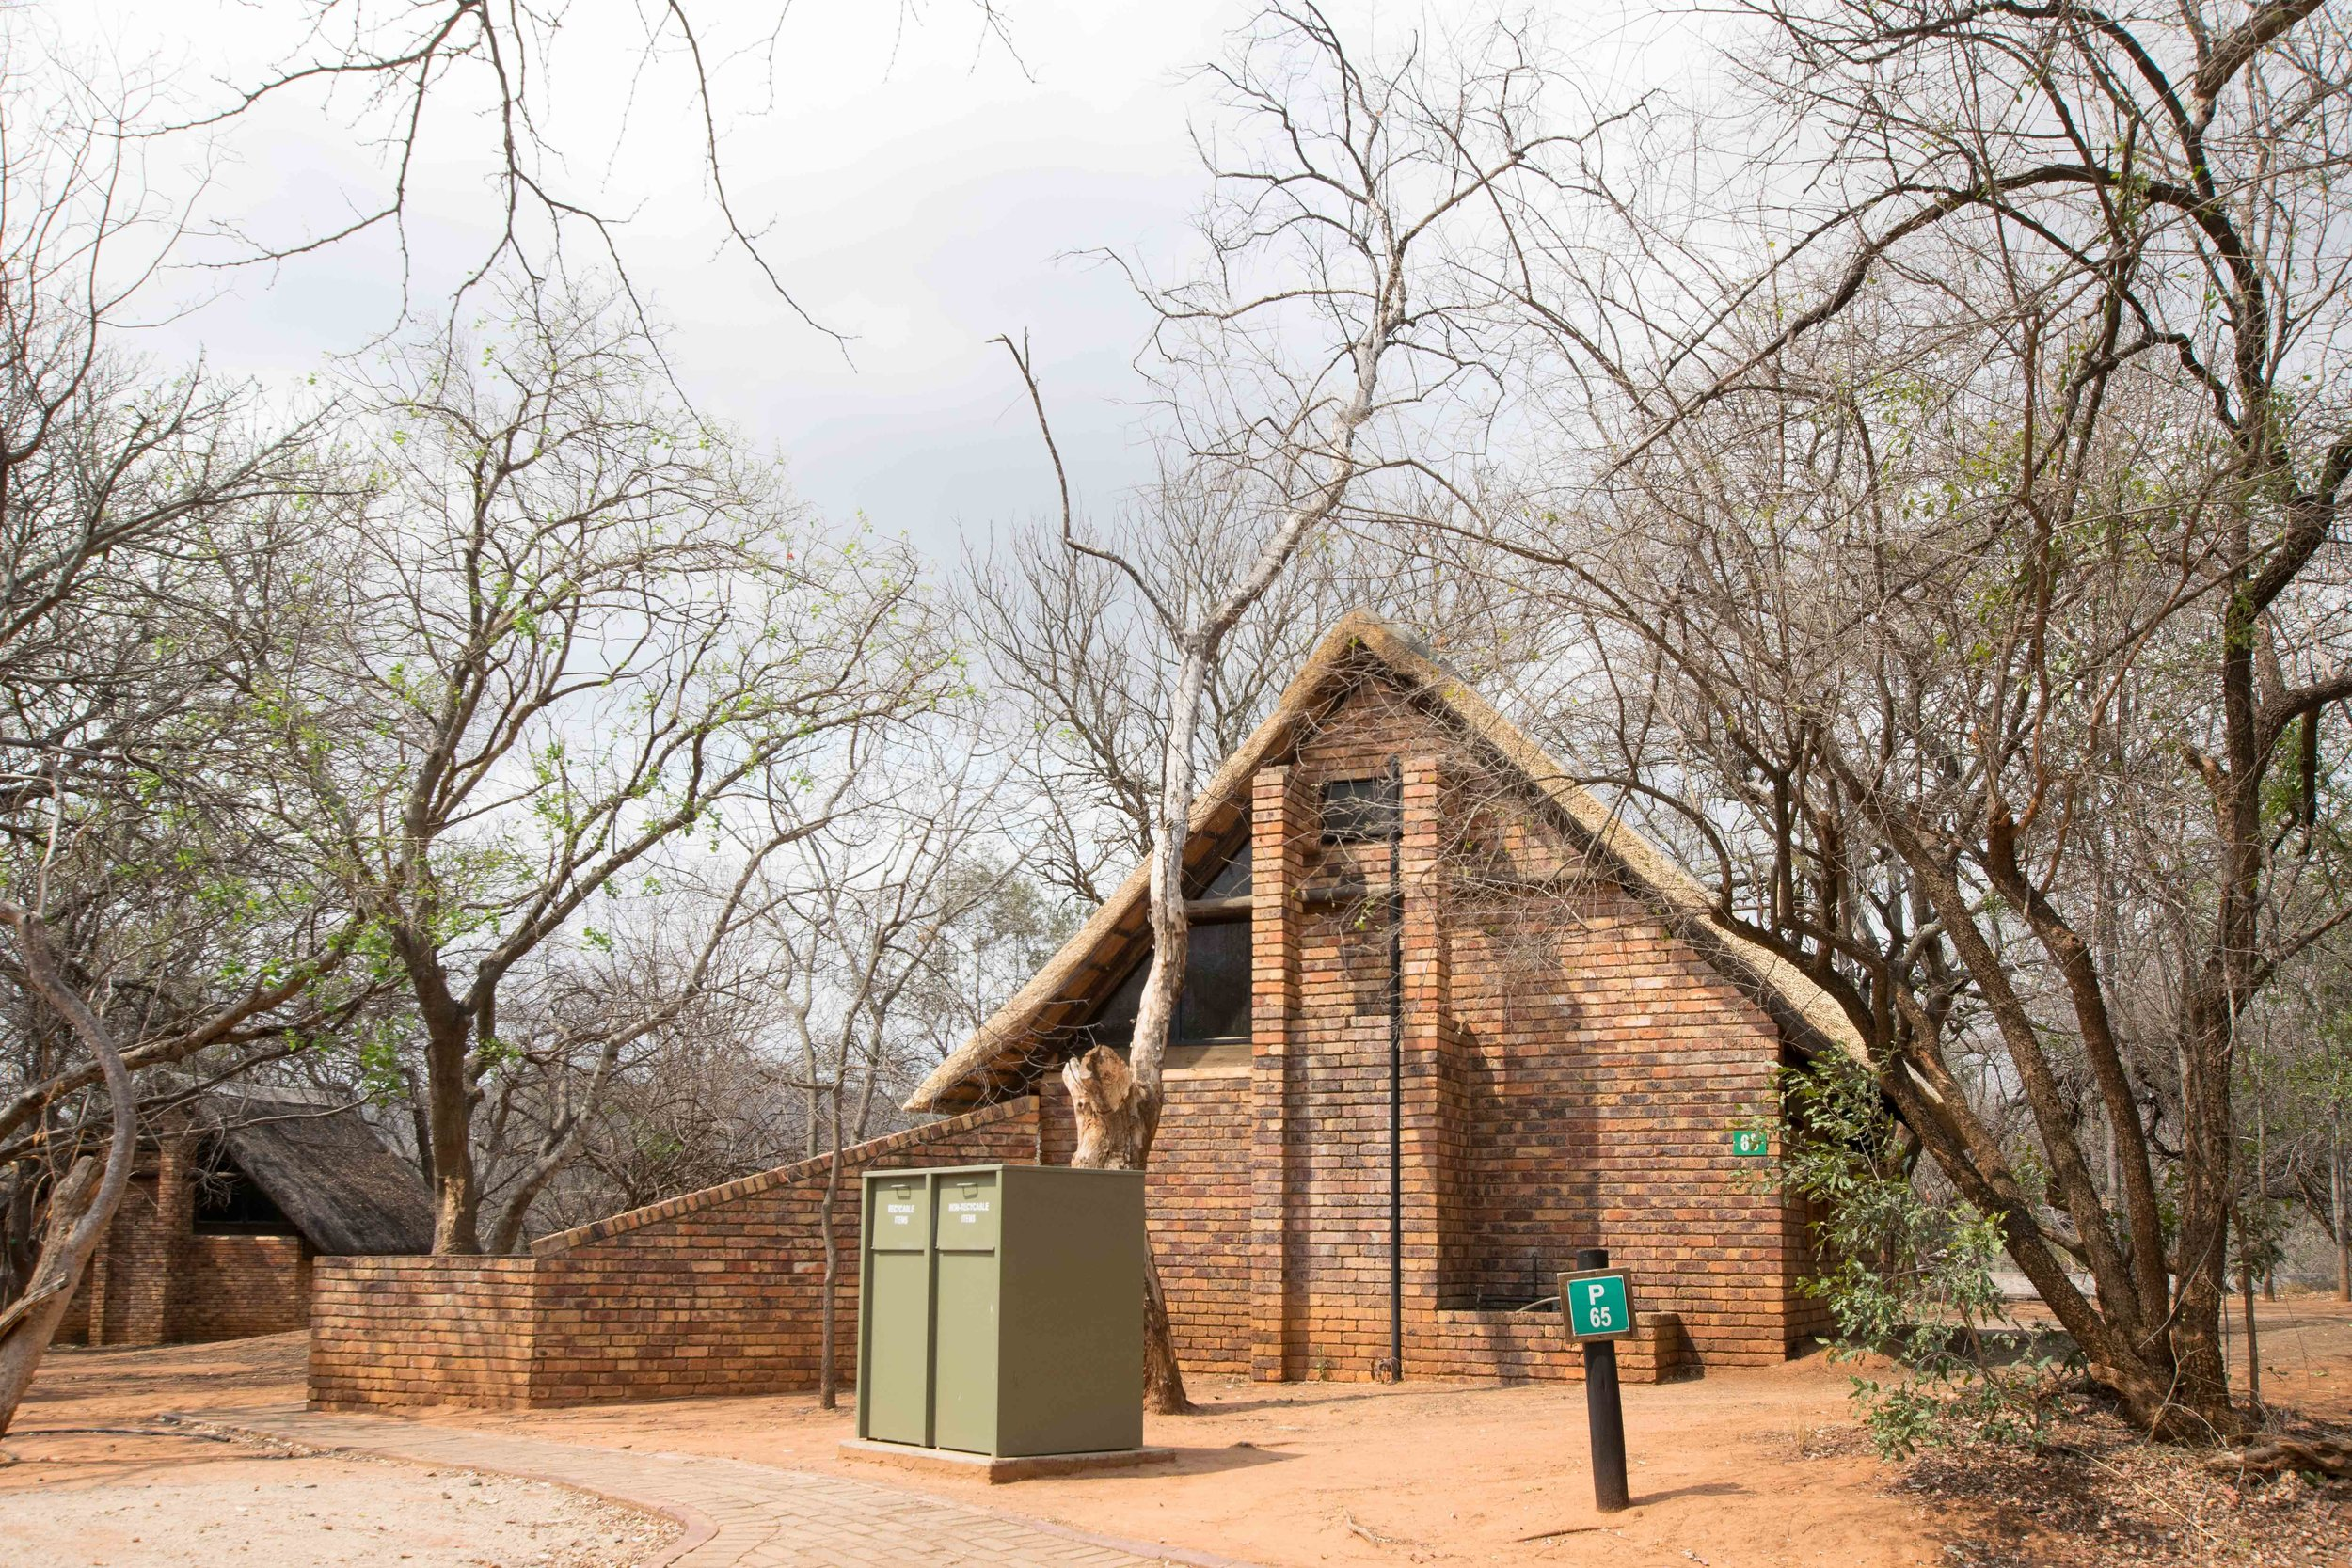 One of the campgrounds in Kruger National Park